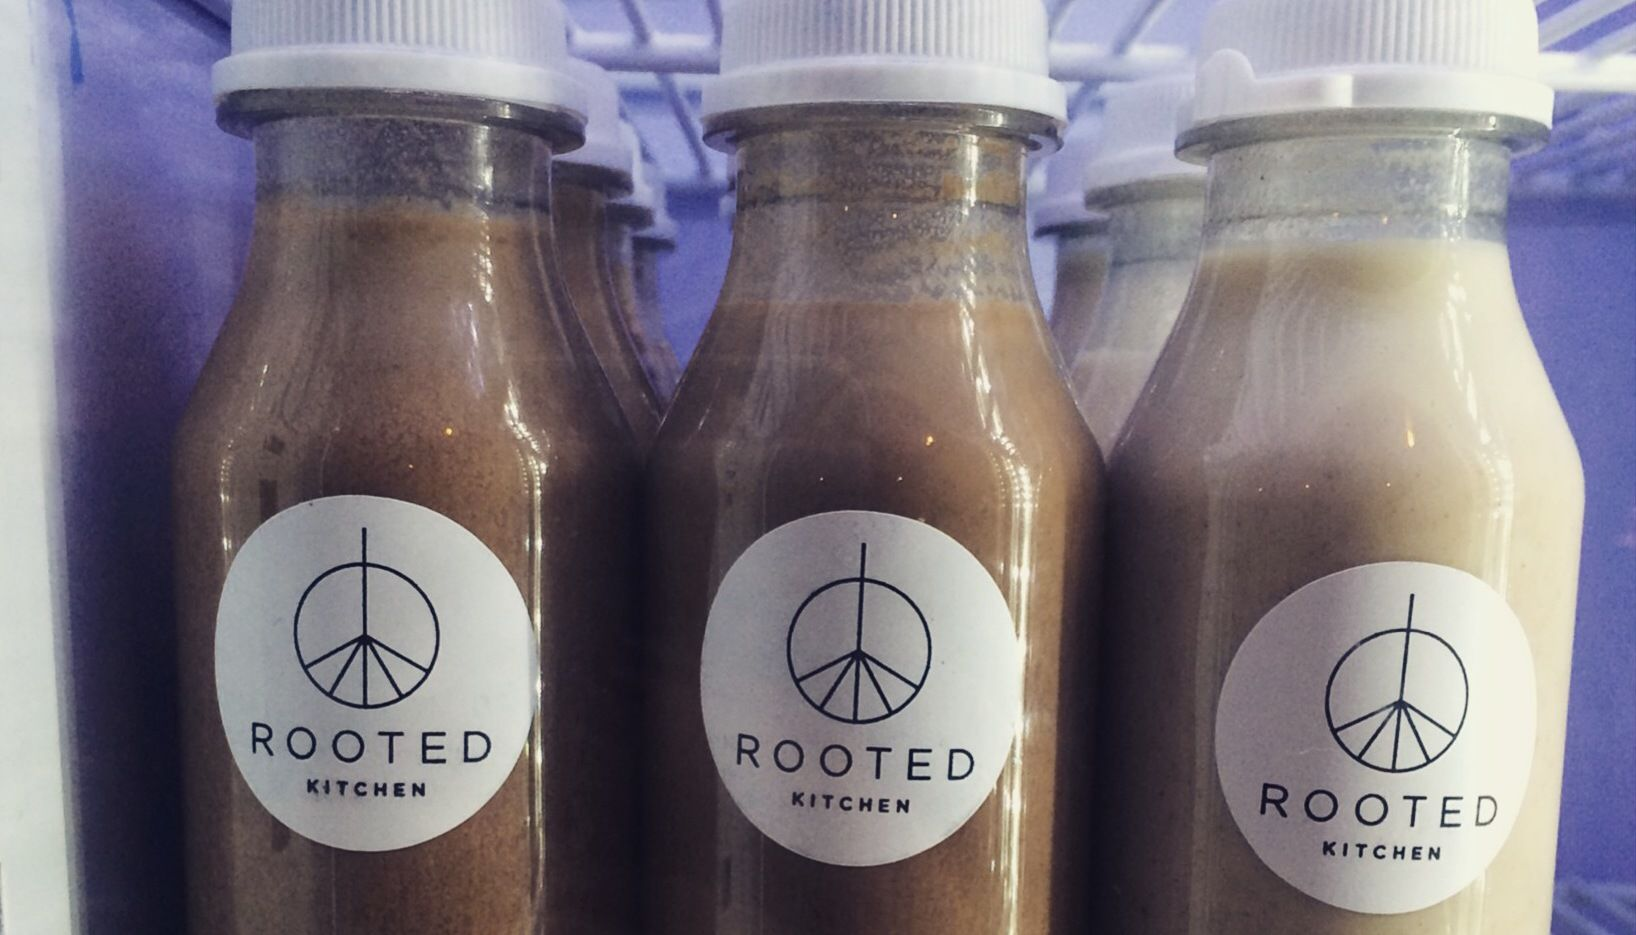 London's real, sustainable food start-up: Rooted in nature